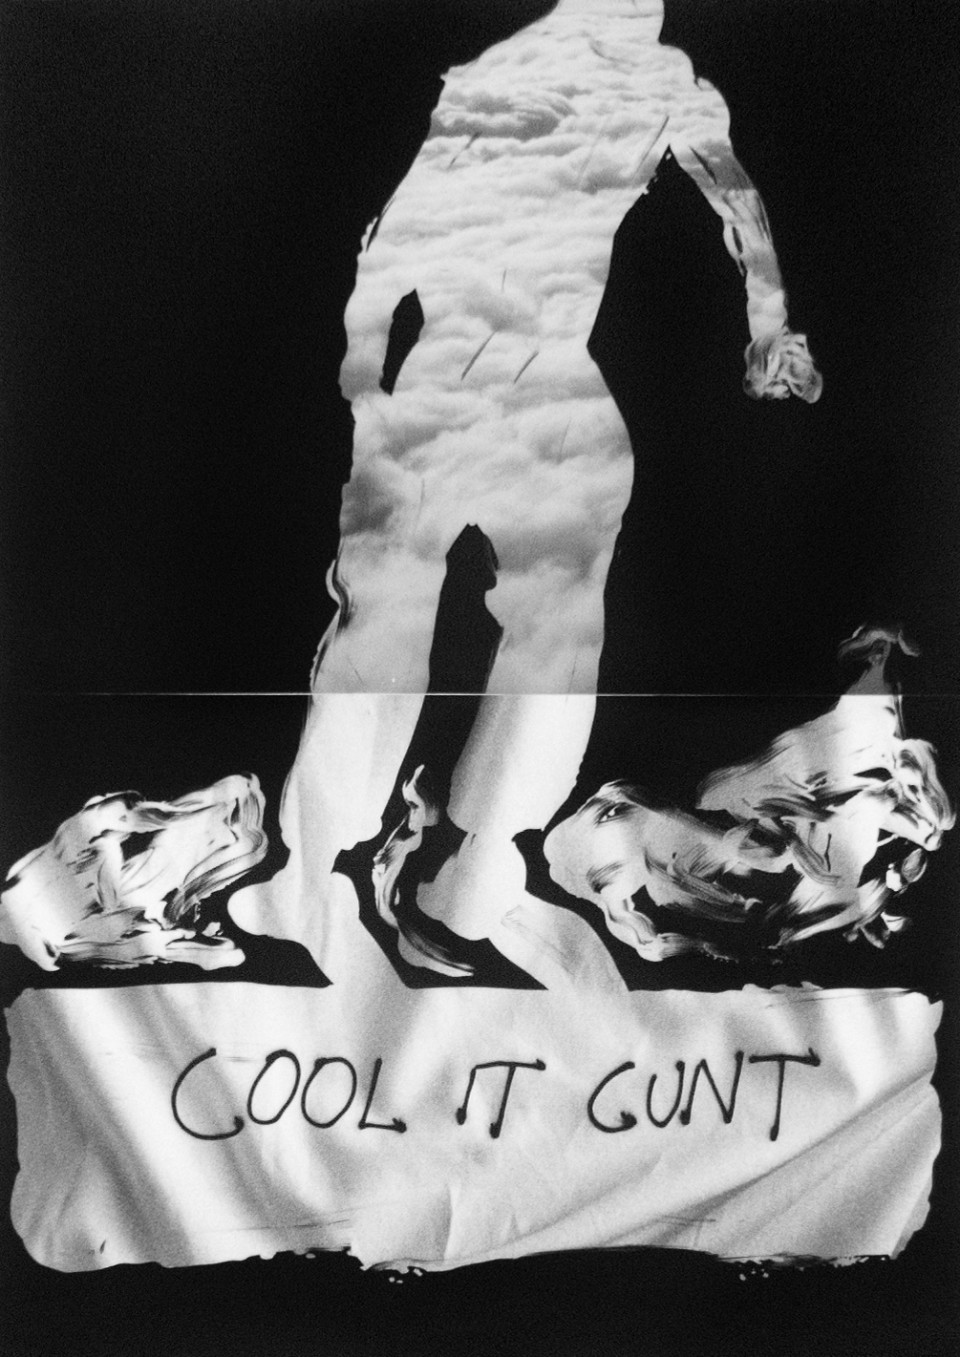 Benjamin Lichtenstein,  Cool it cunt , 2015, unique state silver gelatin prints, 59.5 x 42cm